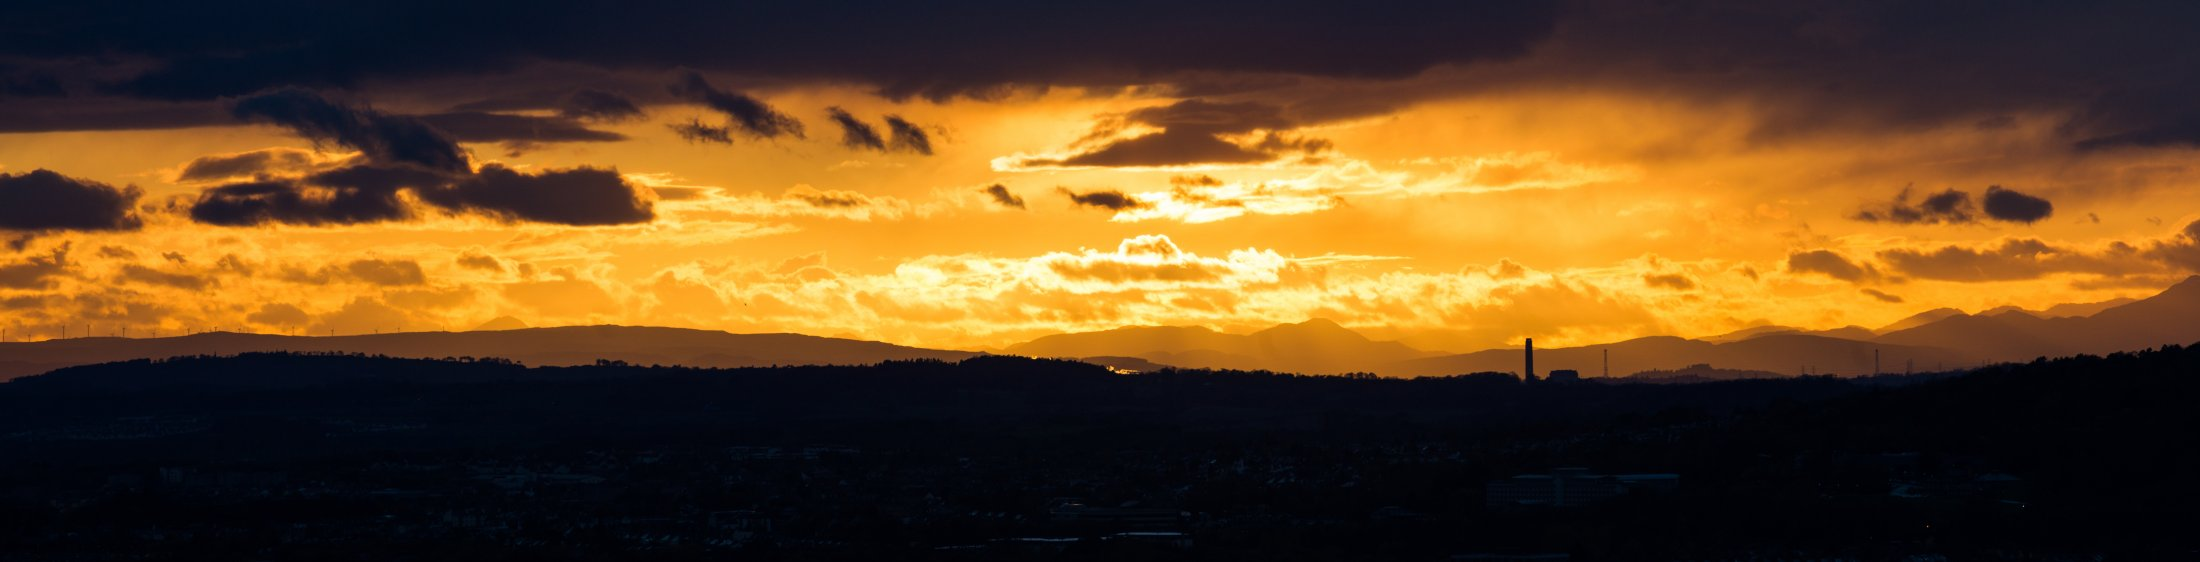 Sunset from Blackford Hill